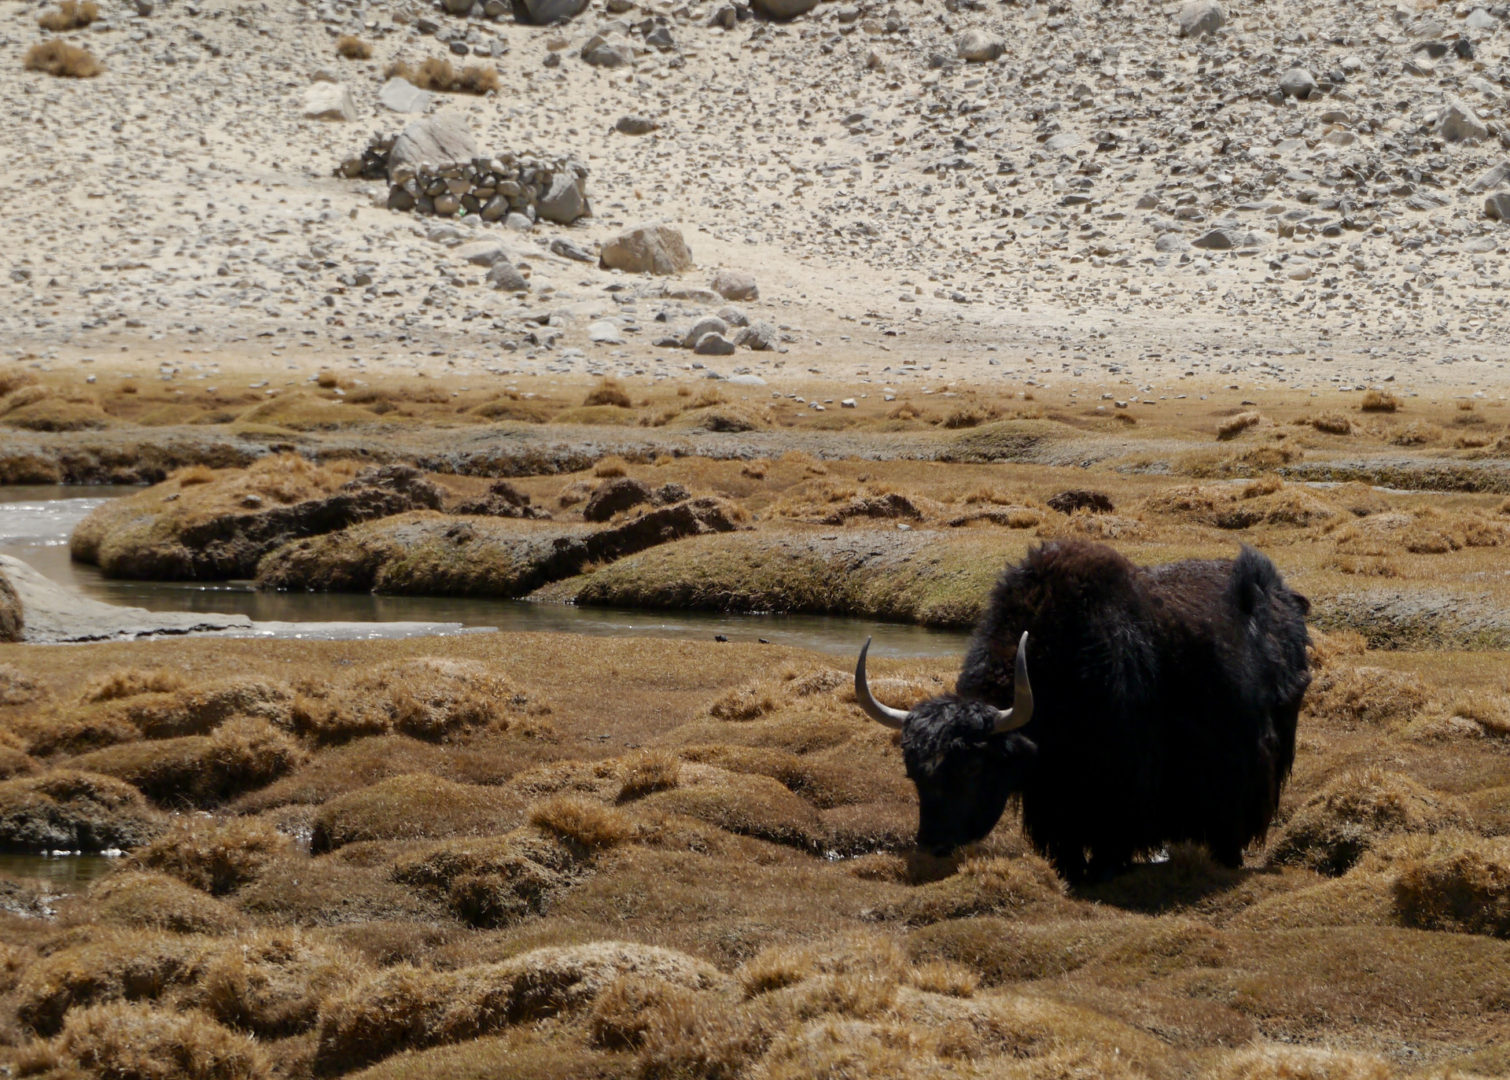 A yak having lunch.